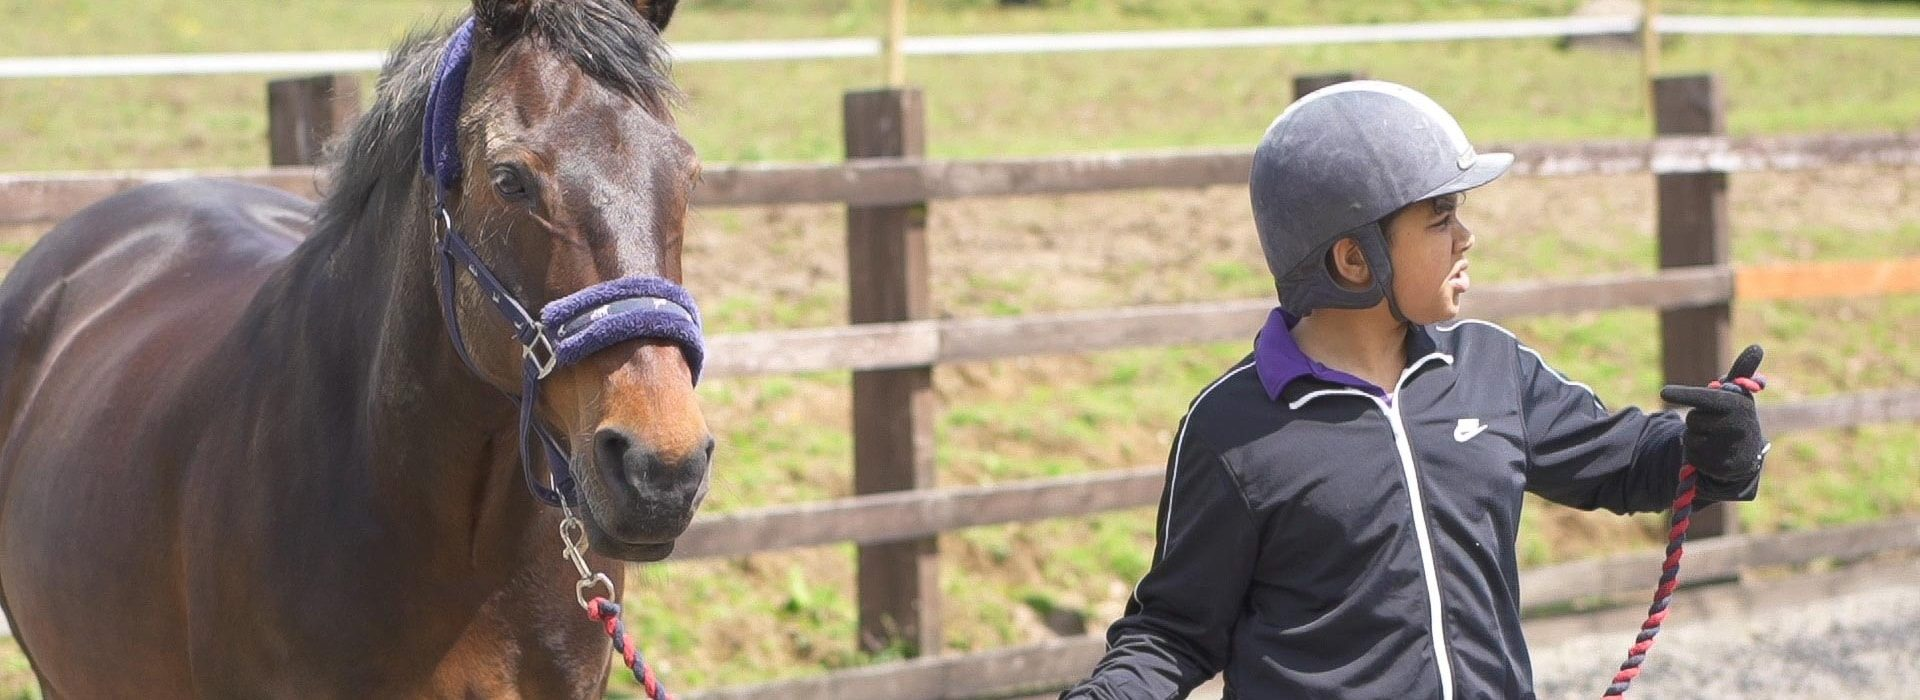 Strength and Learning Through Horses